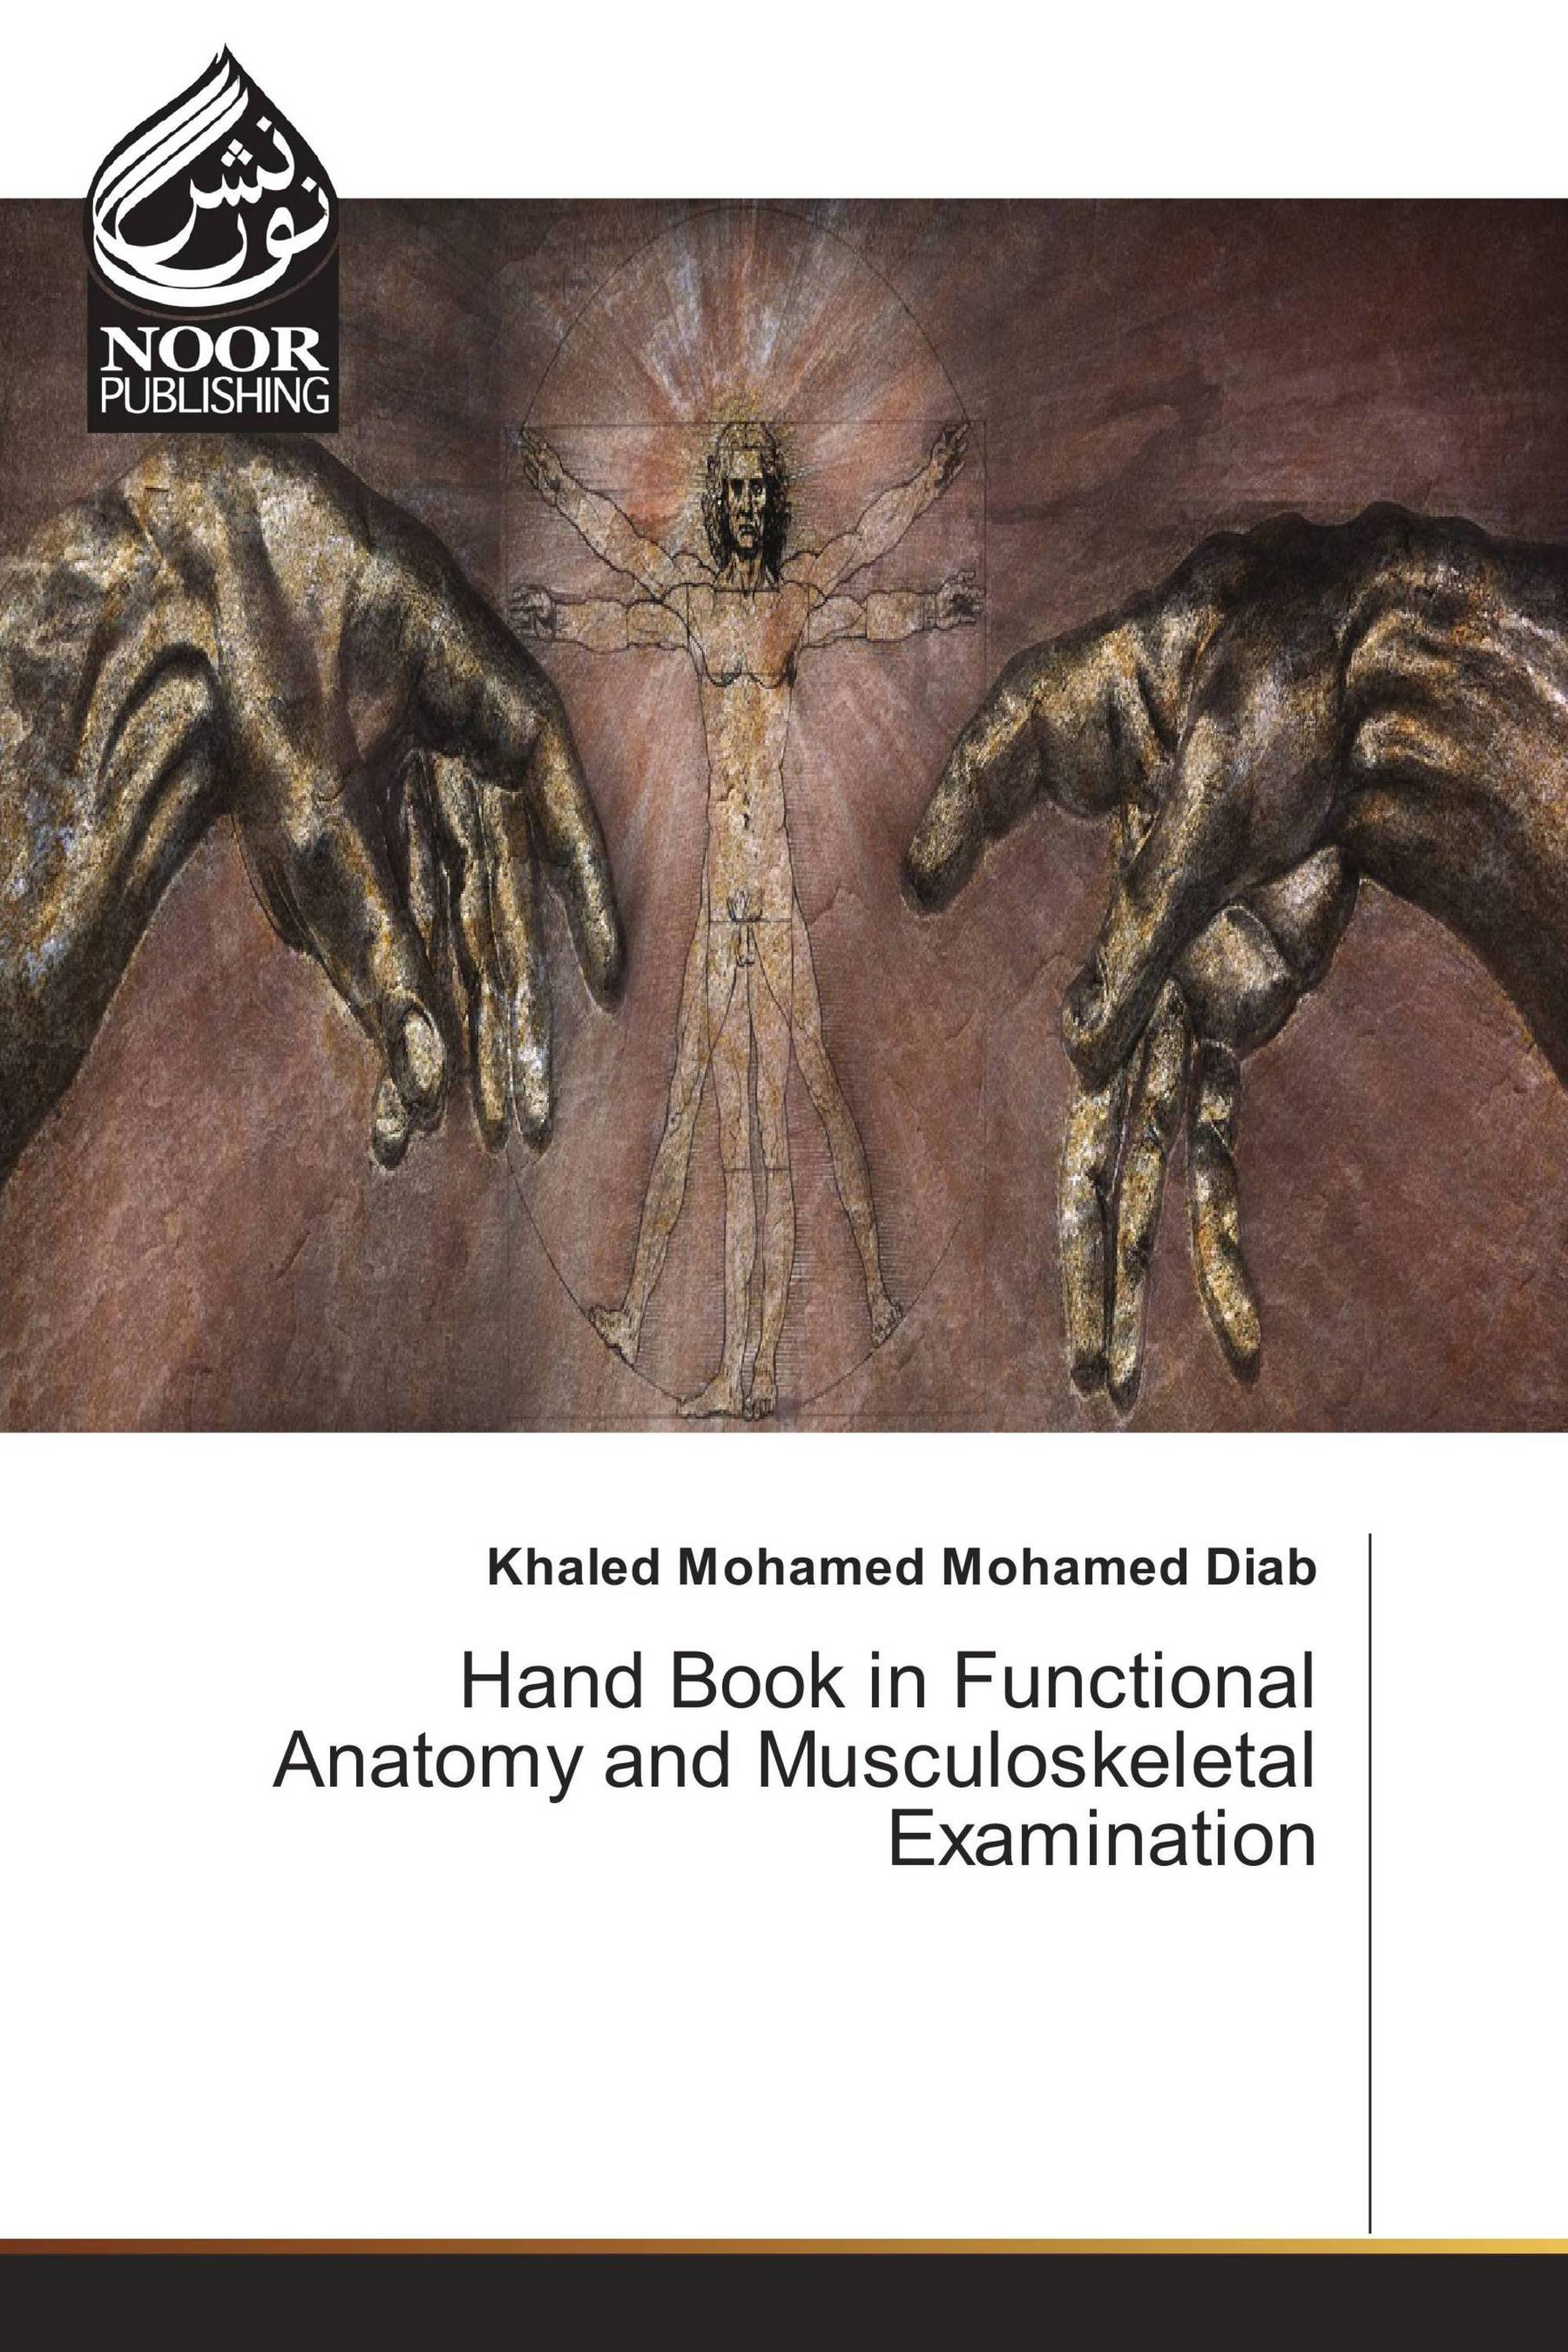 Hand Book in Functional Anatomy and Musculoskeletal Examination ...